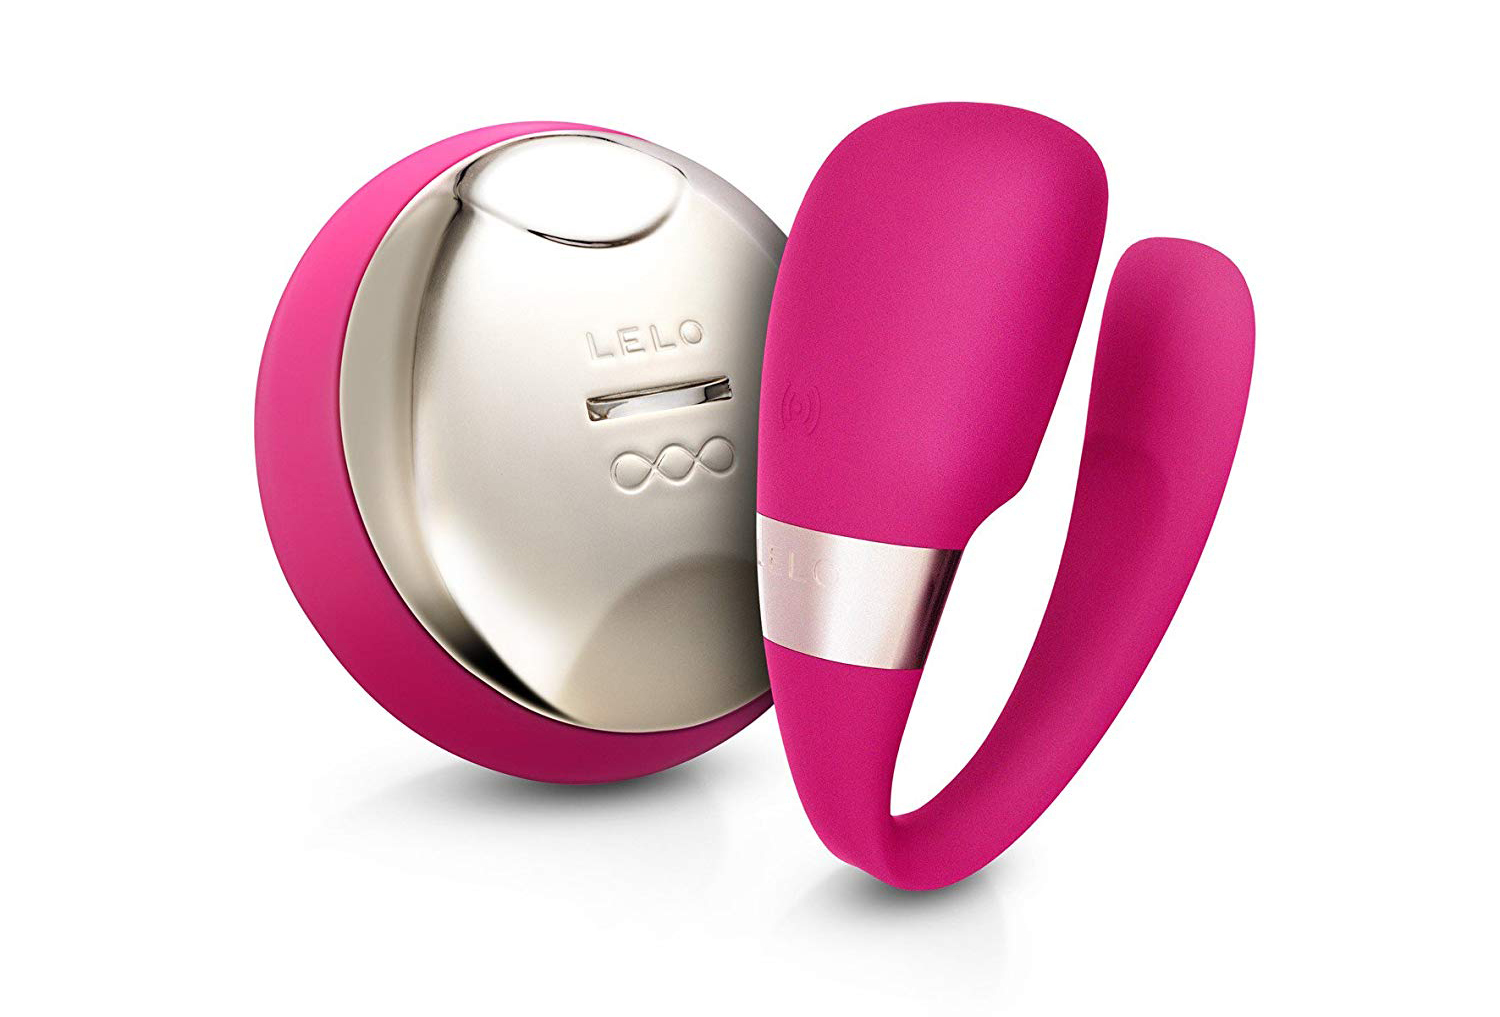 Tiani 3 hands free massager